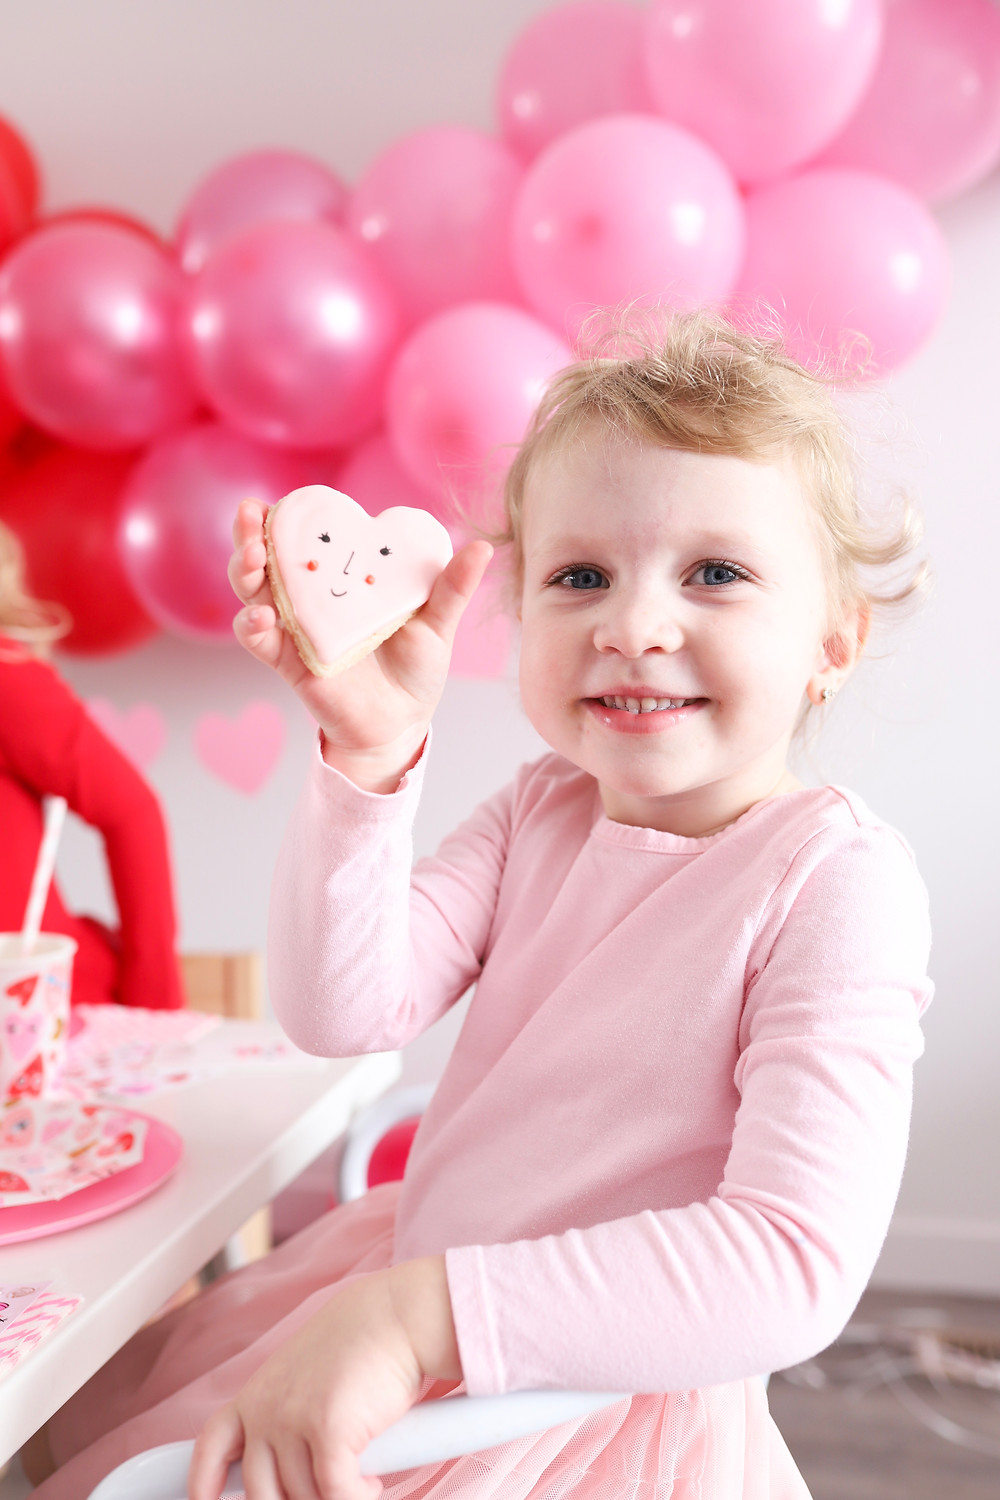 A little girl smiling at the camera holding a Valentine's Day cookie.